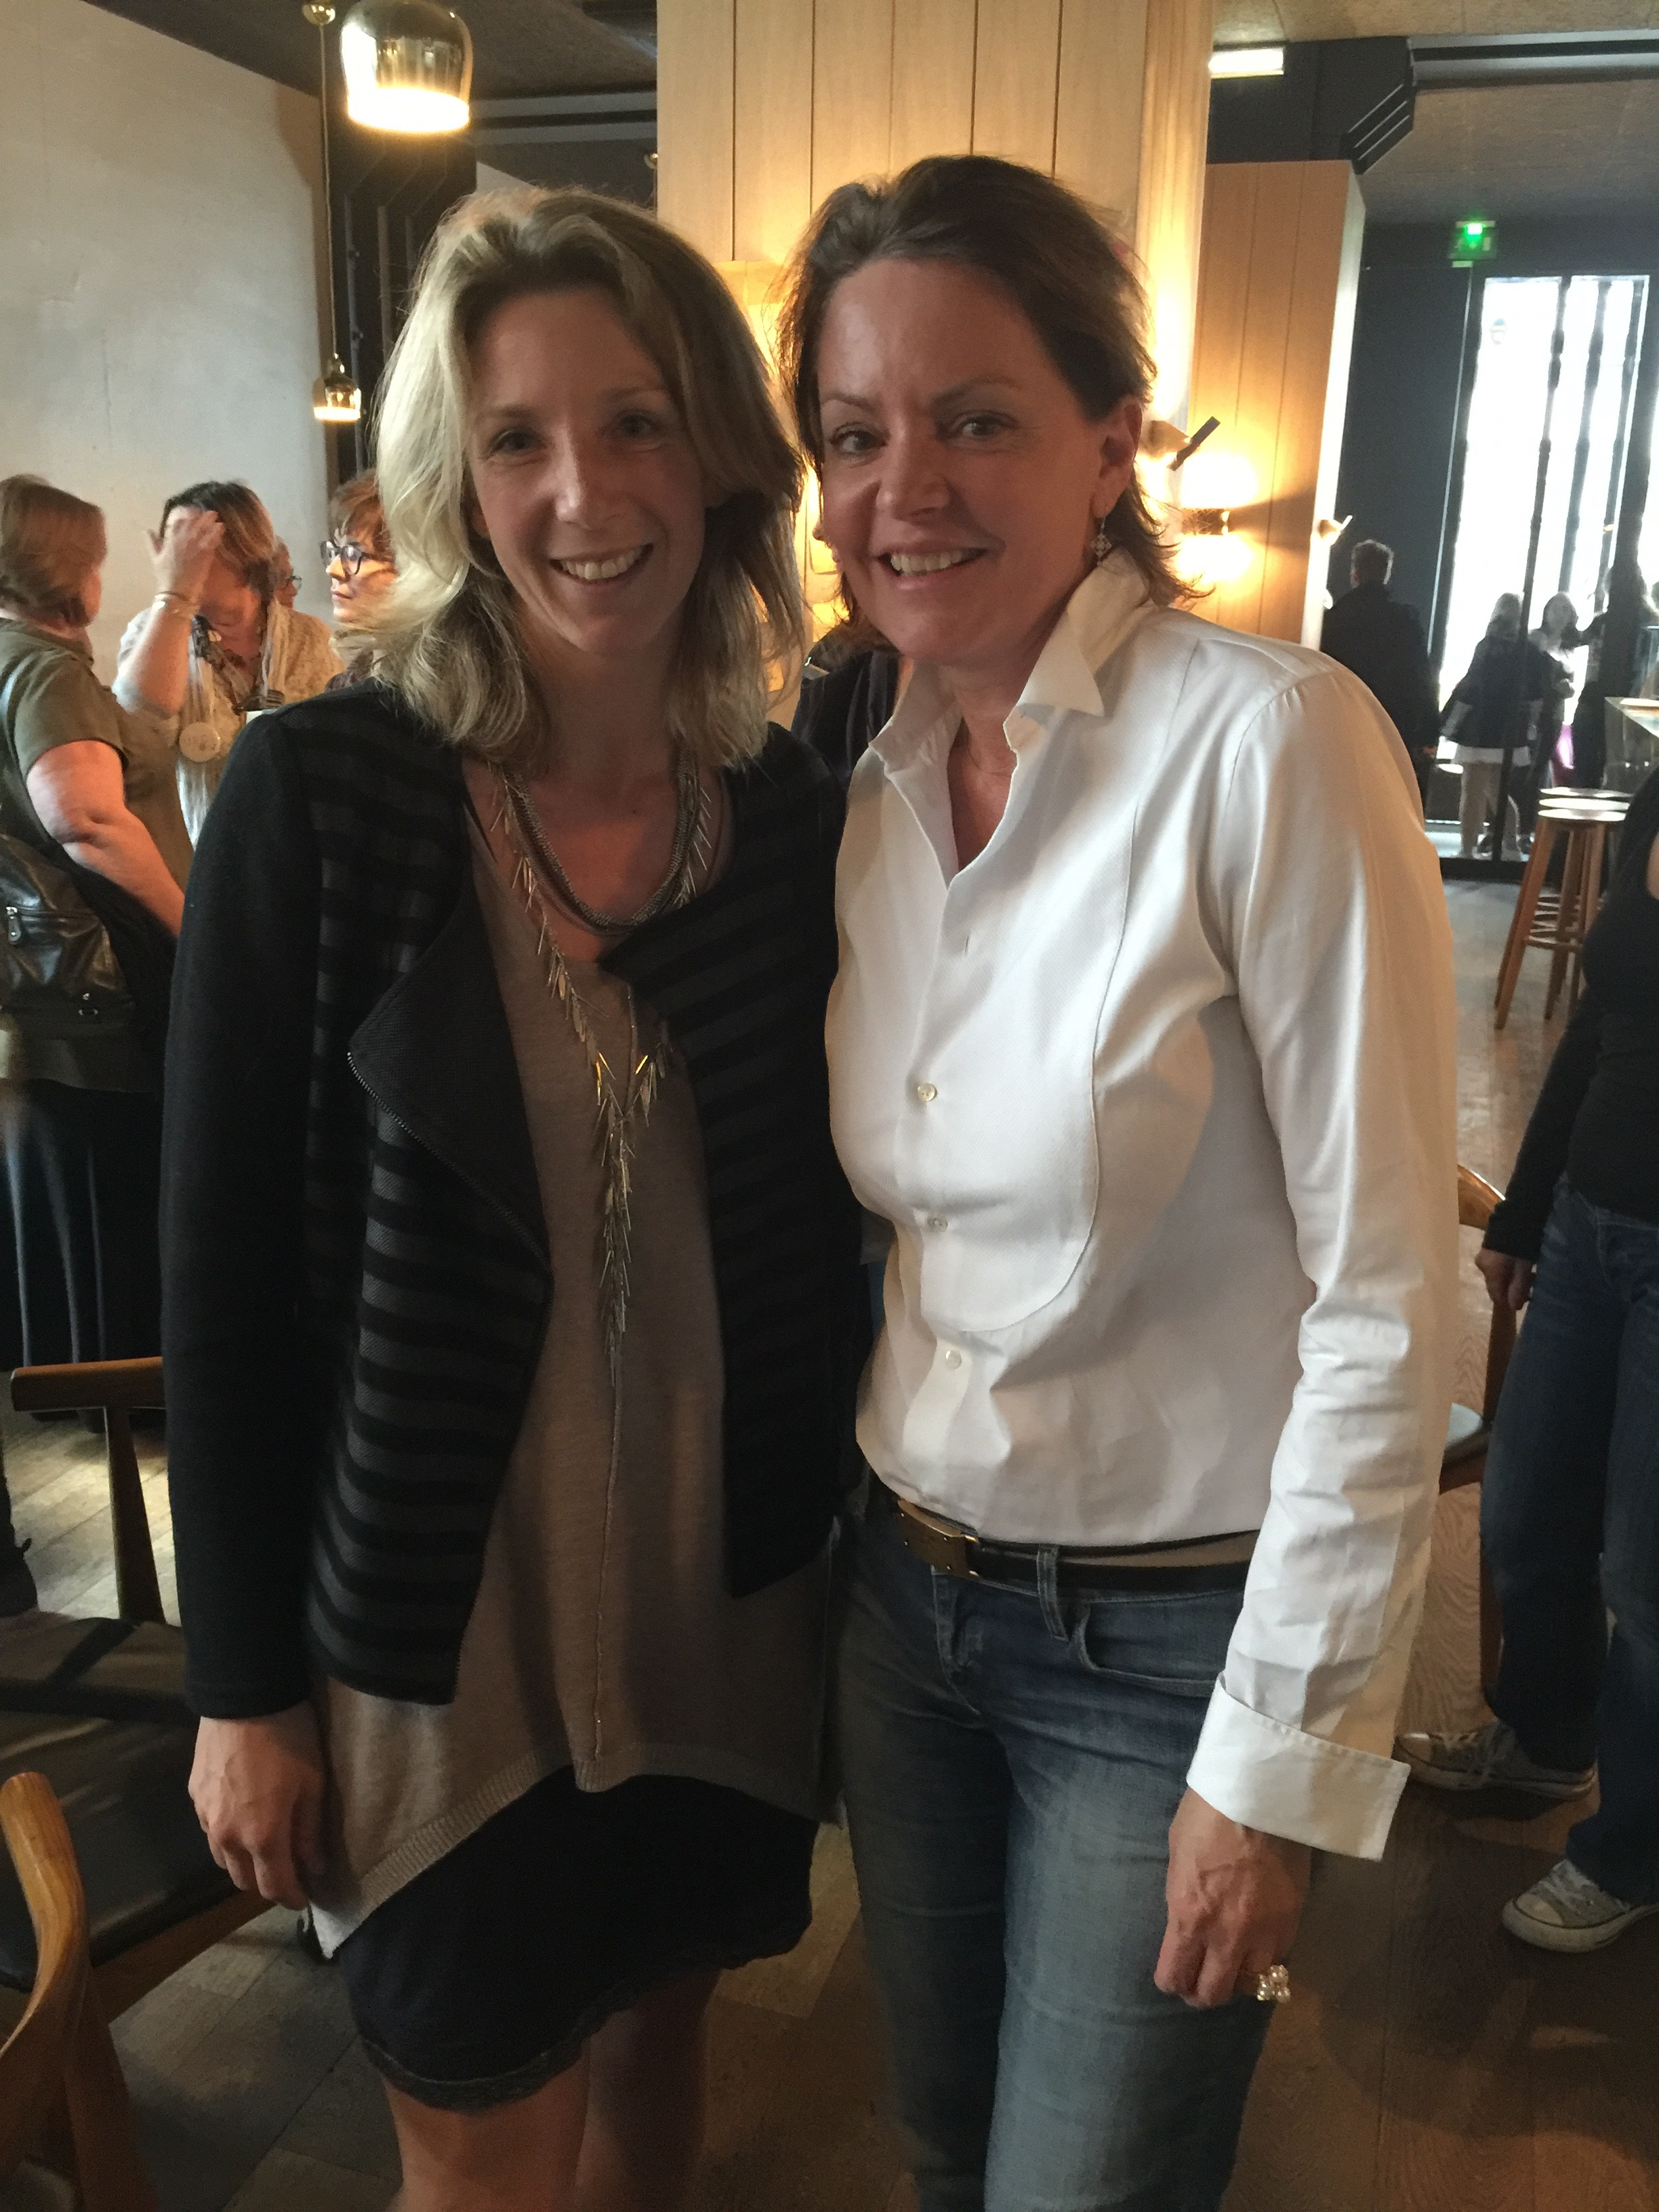 Cendrine dominguez et sandrine neimer de synergie d co for Interieur 78